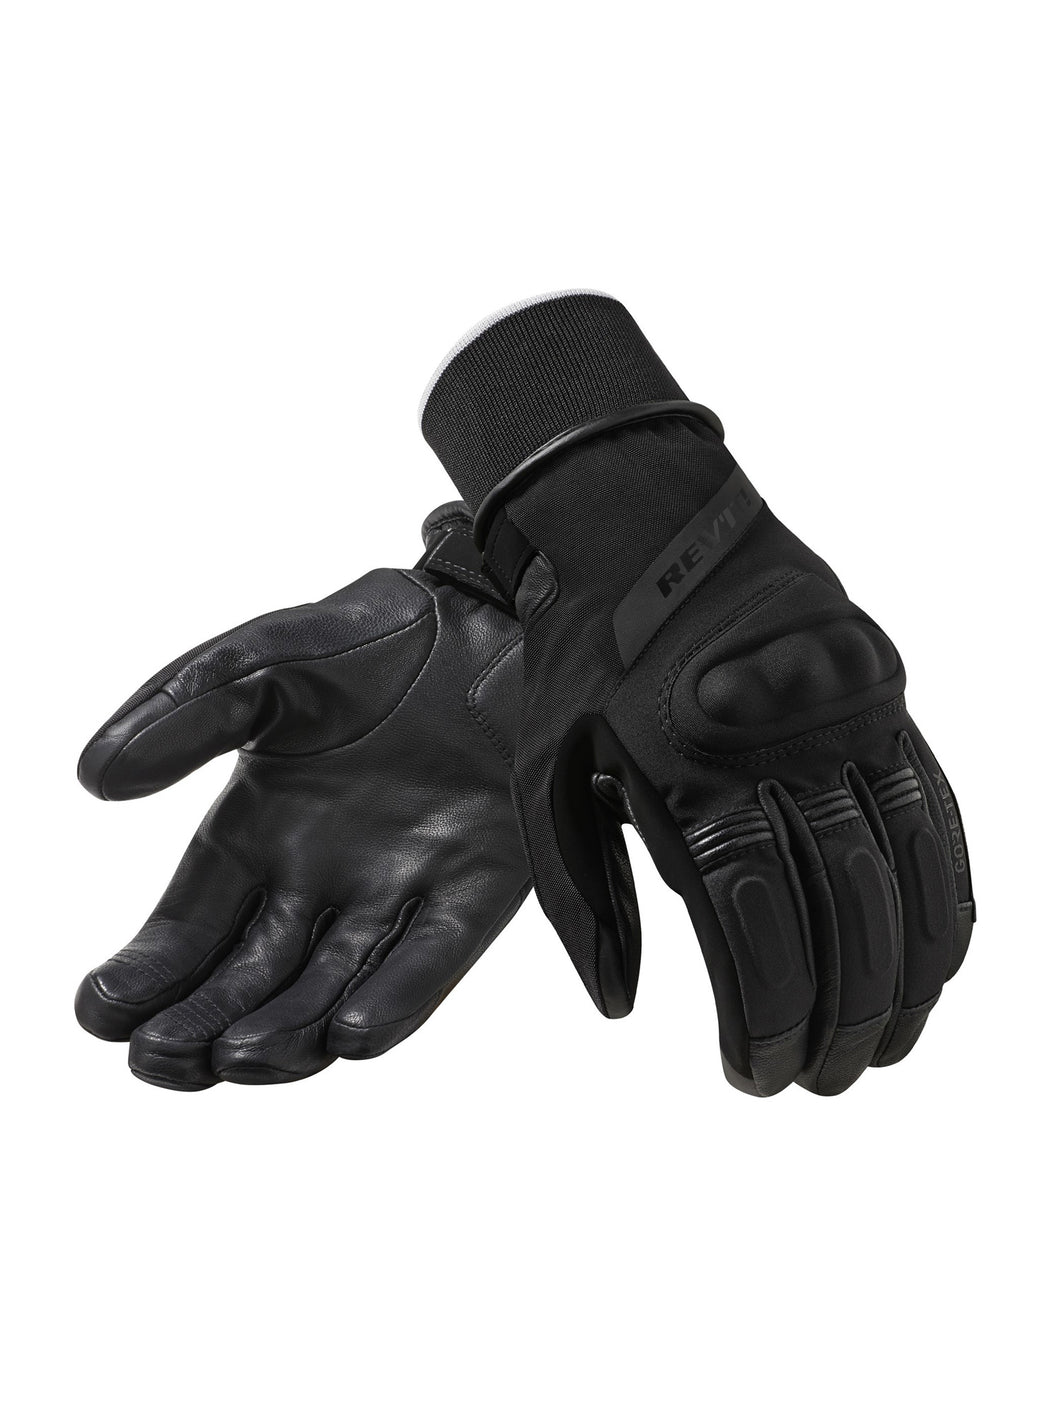 REVIT Kryptonite 2 GTX Gloves